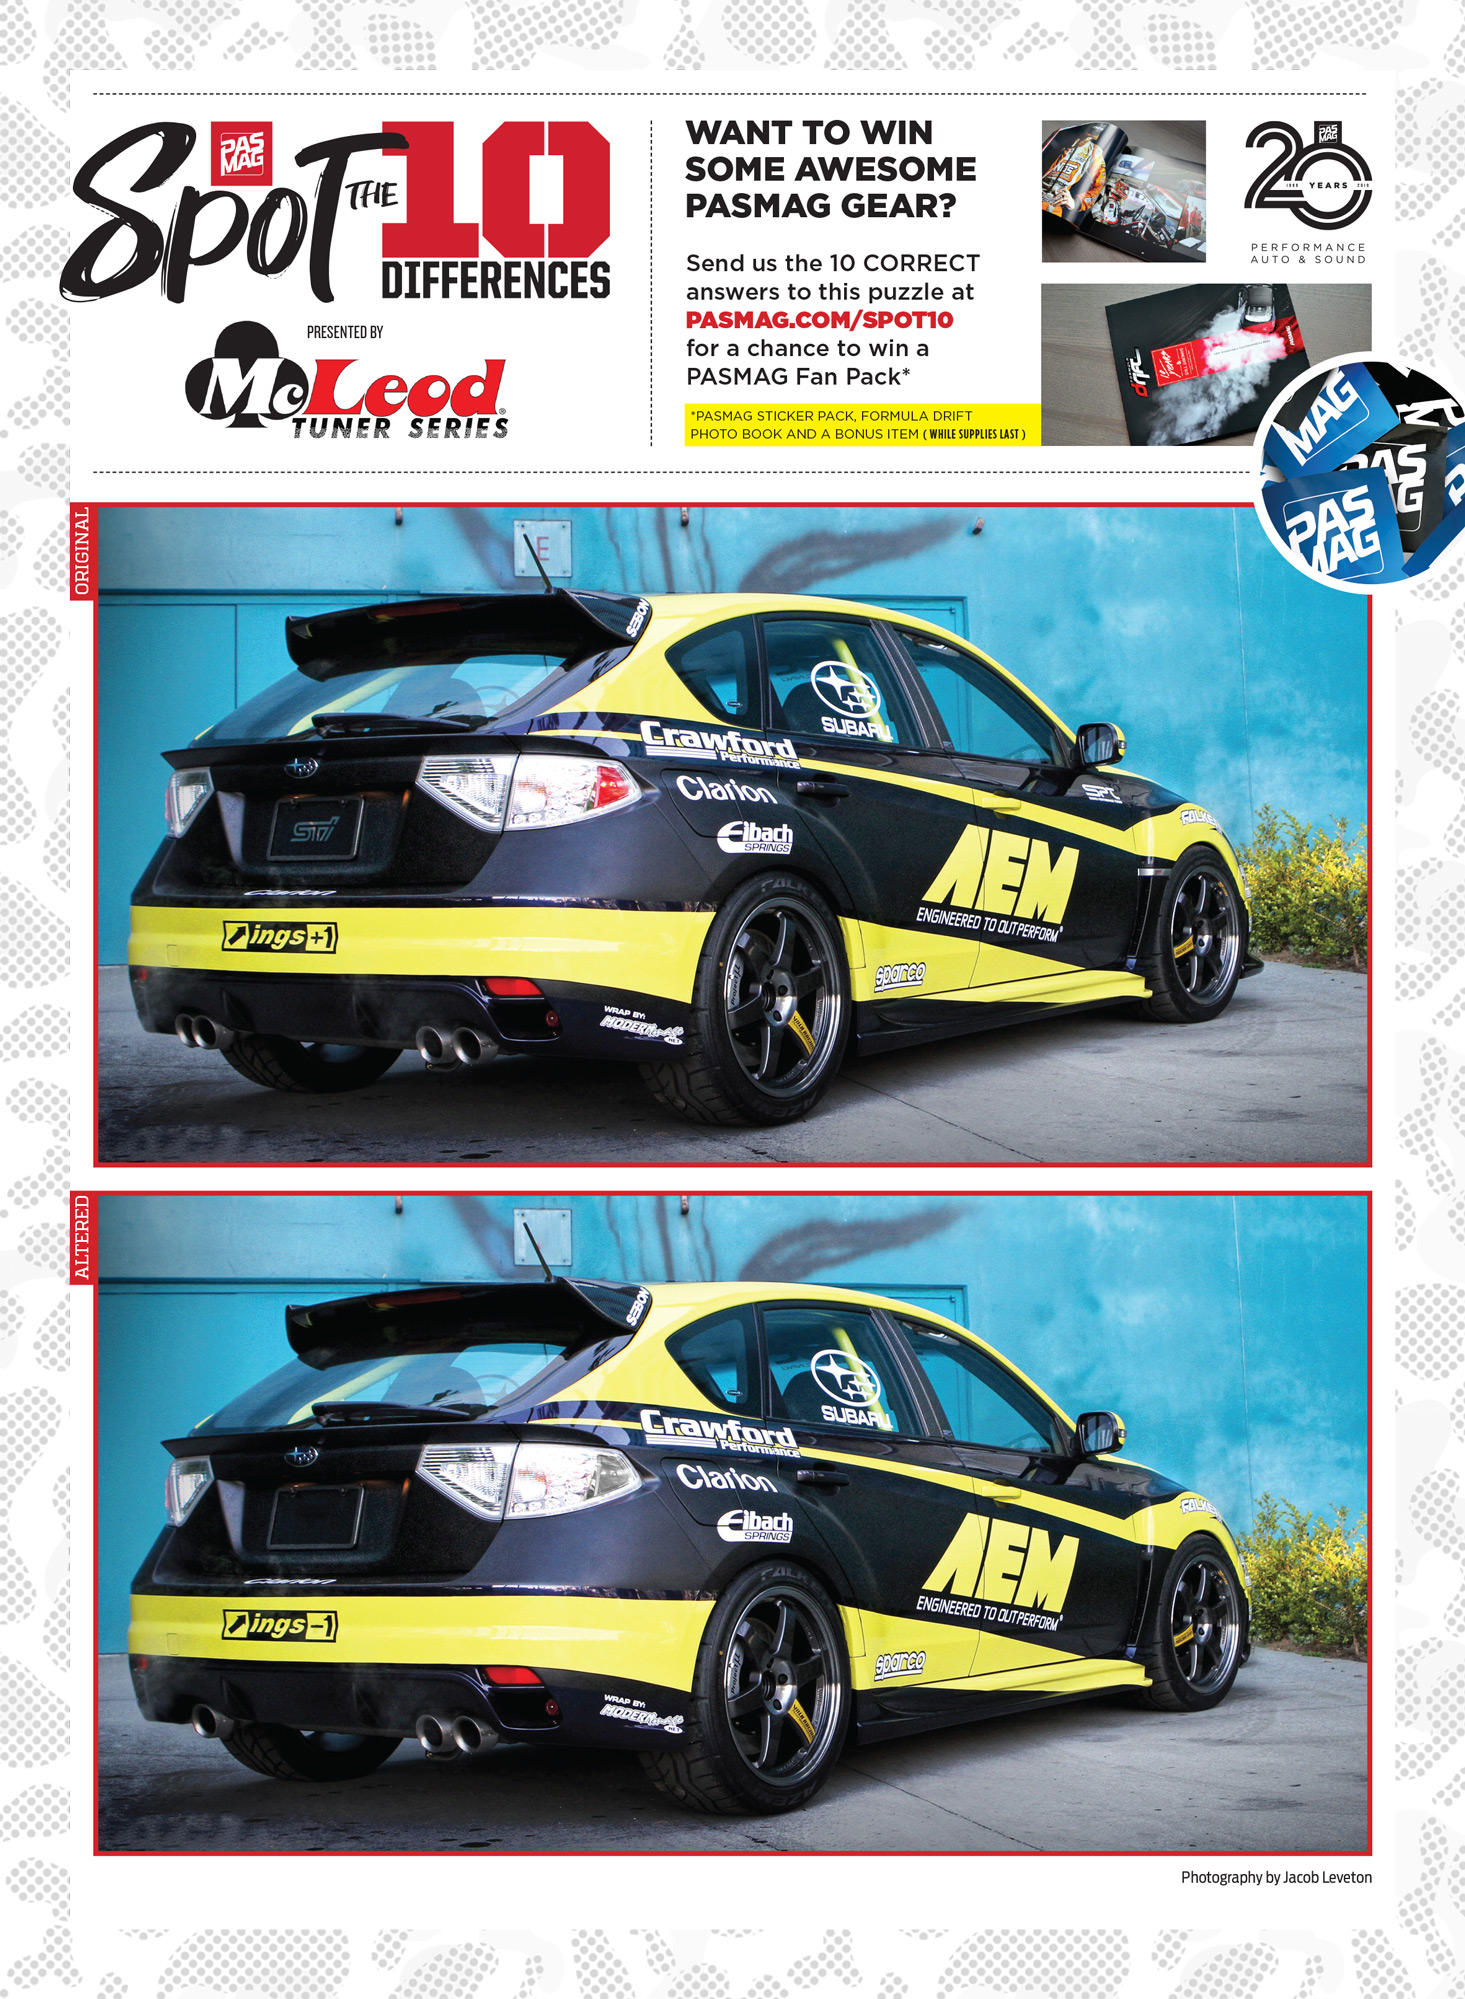 PASMAG Spot the Differences June 12 2020 AEM Clarion 2008 Subaru WRX STI pasmag